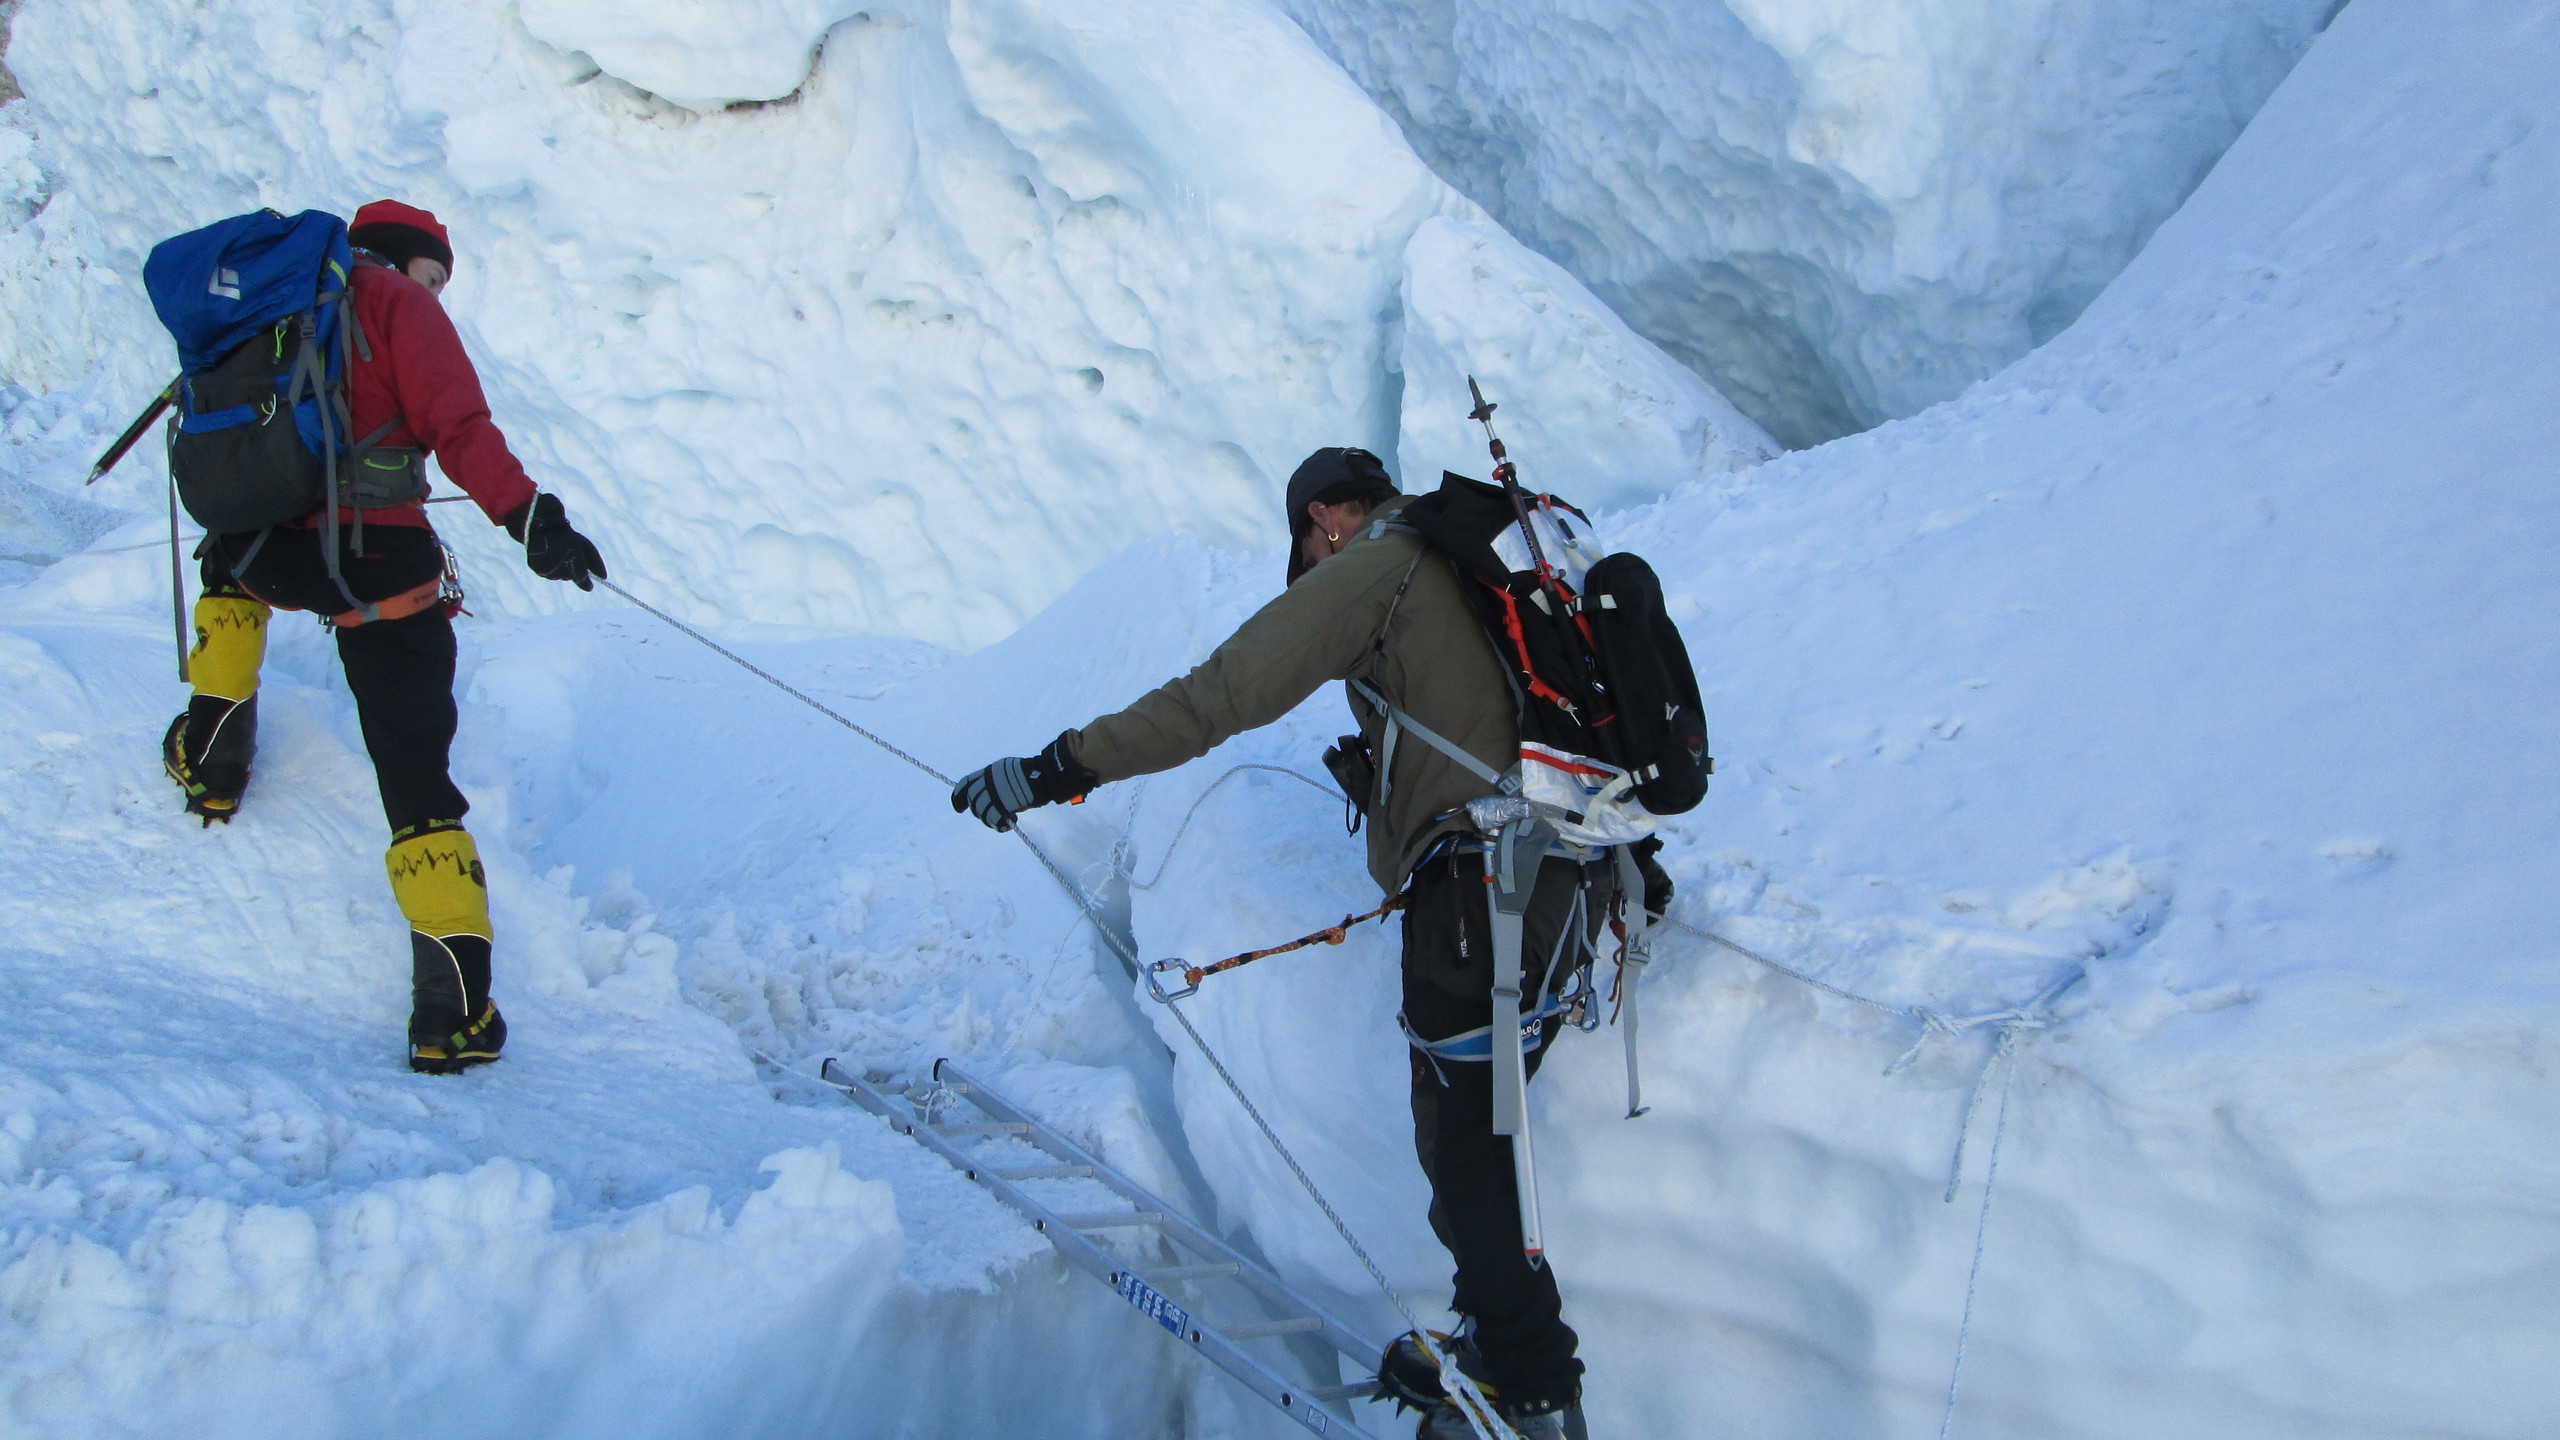 Crossing a crevasse